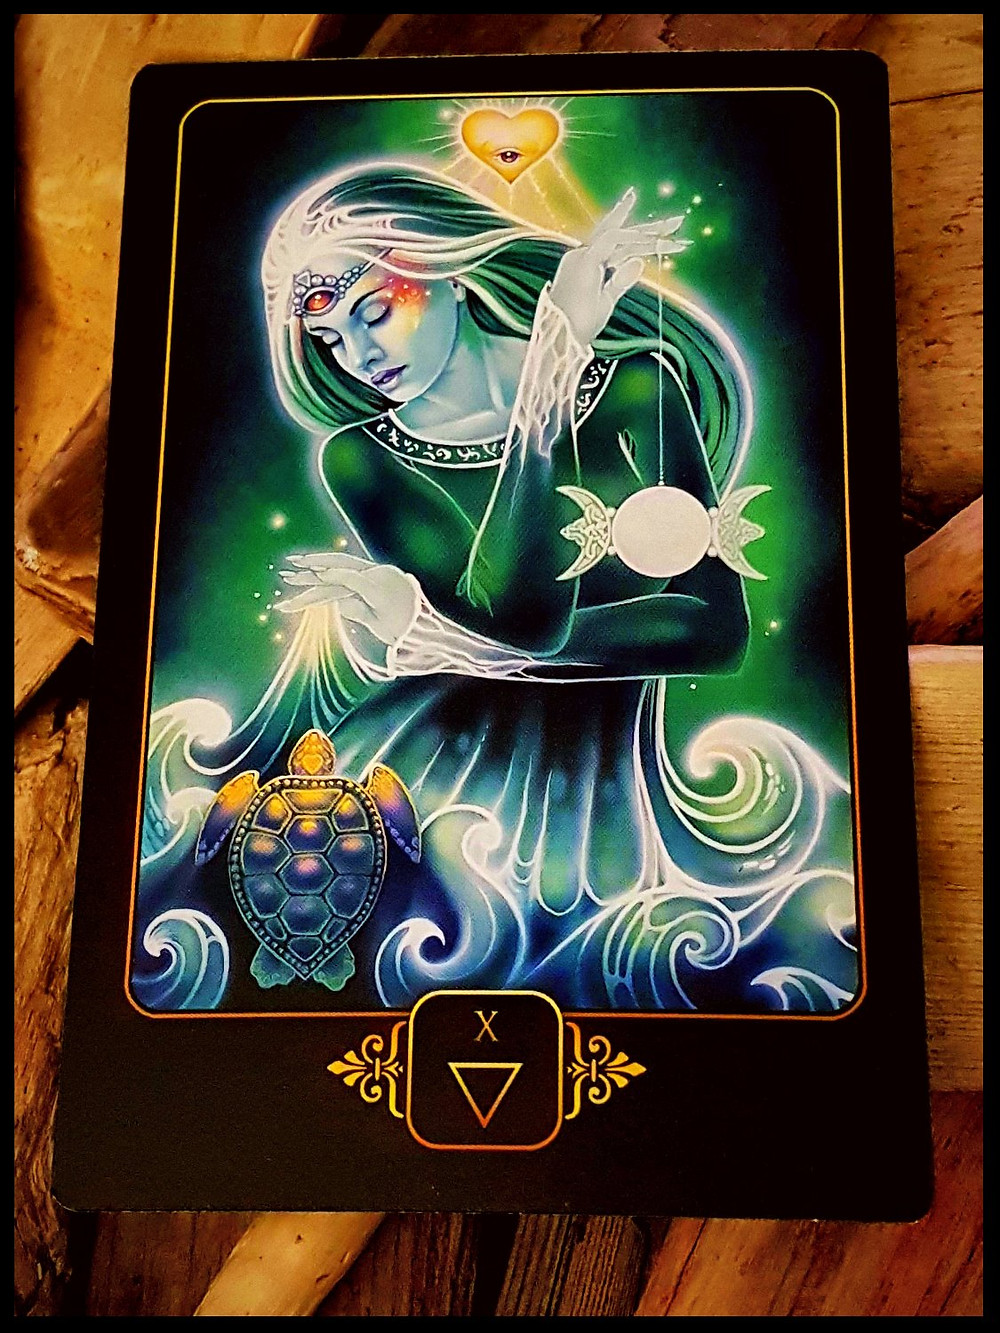 a tarot card with a symbol of a woman, symbolizing universal love, divine connection to celebrate international womens day march 8